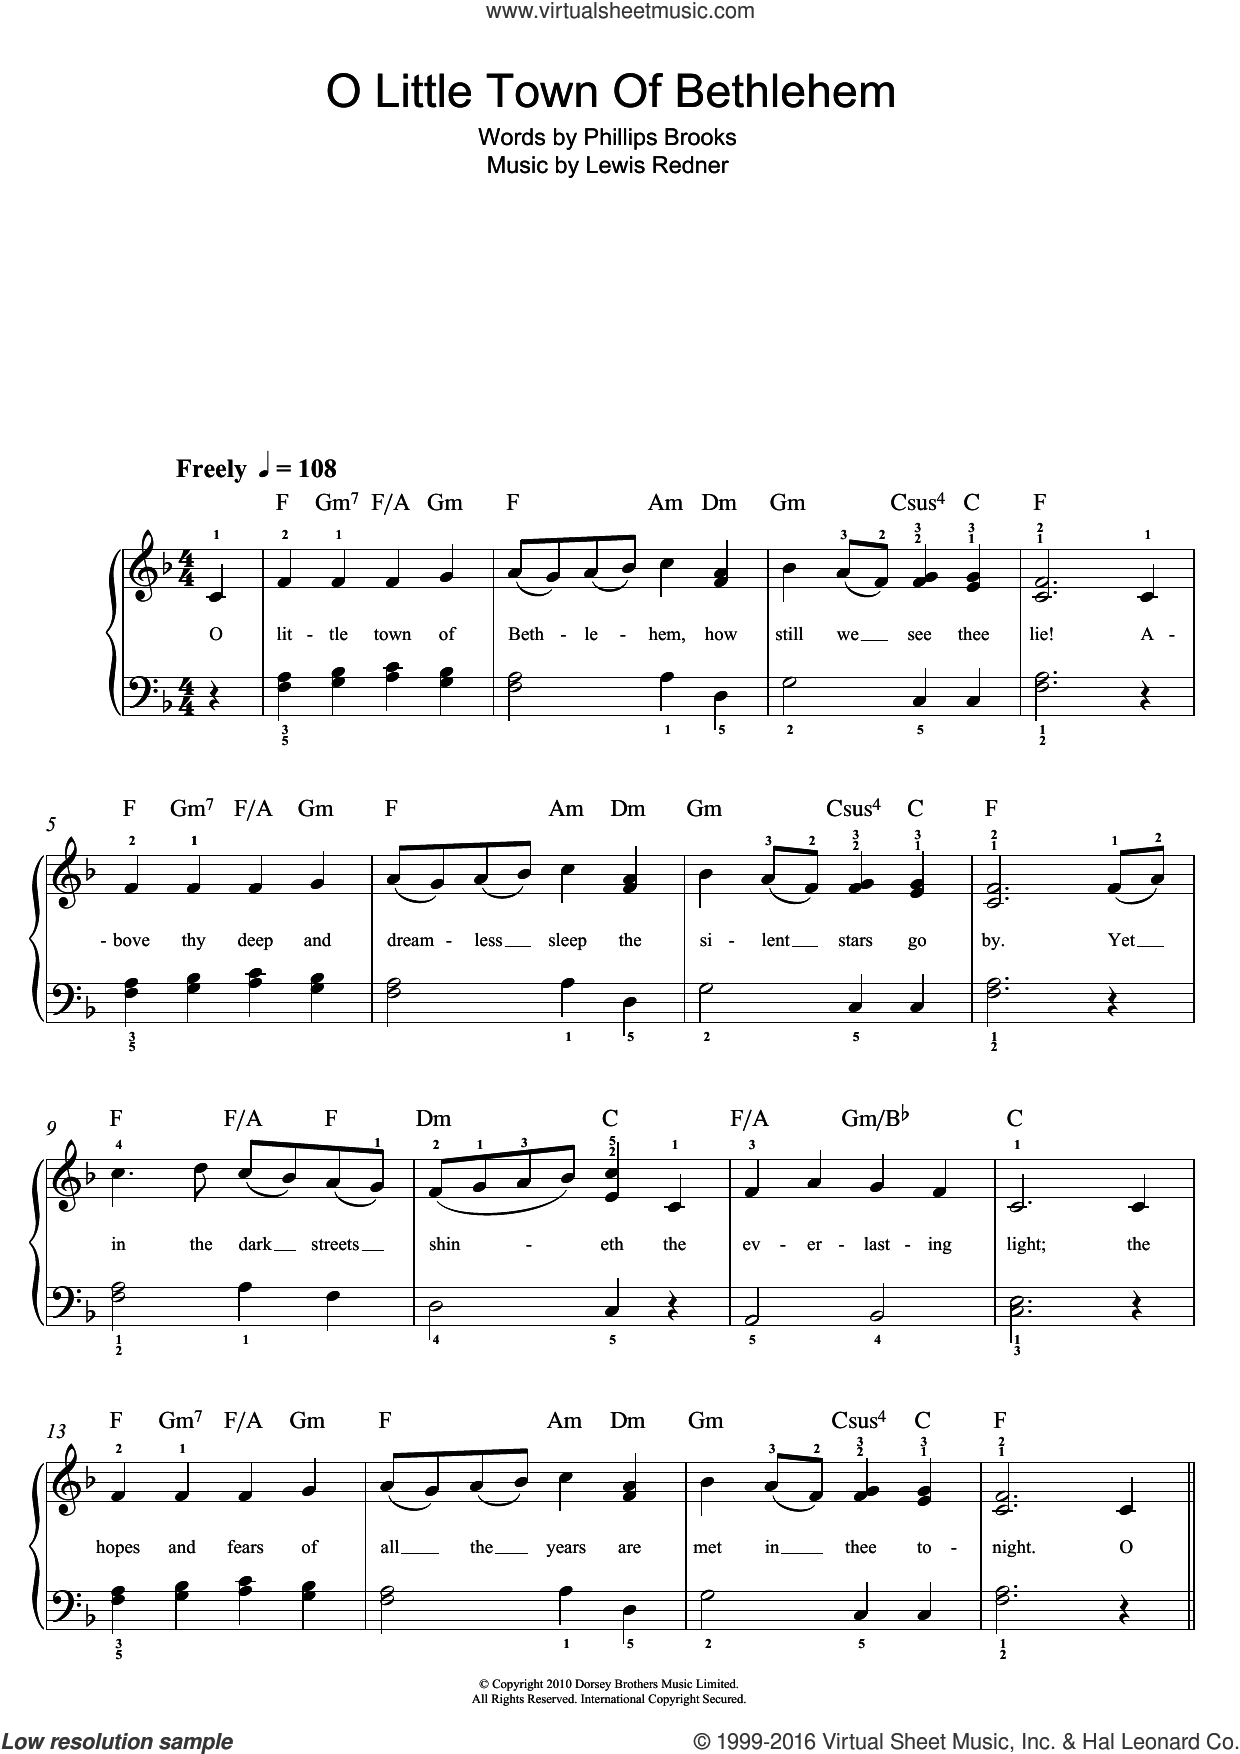 O Little Town Of Bethlehem sheet music for piano solo (beginners) by Lewis Redner, Miscellaneous and Phillips Brooks, beginner piano (beginners)